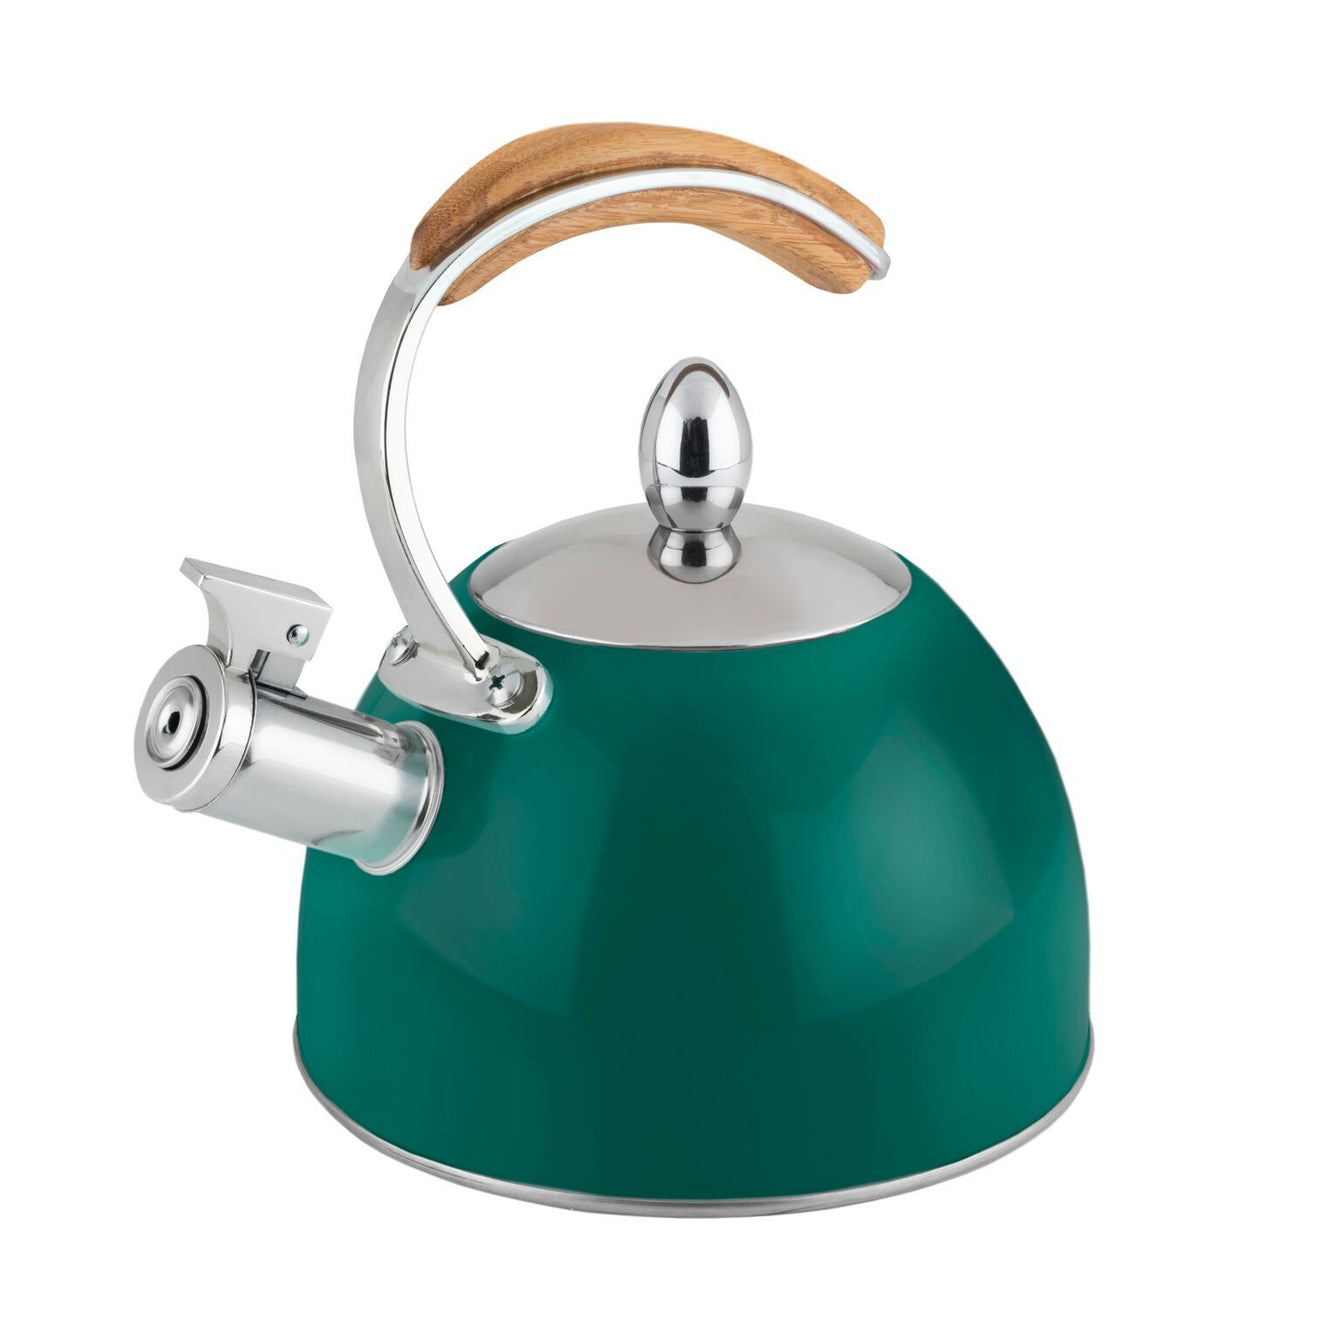 Presley Stainless Steel and Wood Tea Kettle-Home - Coffee + Tea - Tea Pots + Kettles-PINKY UP-Dark Green-Peccadilly